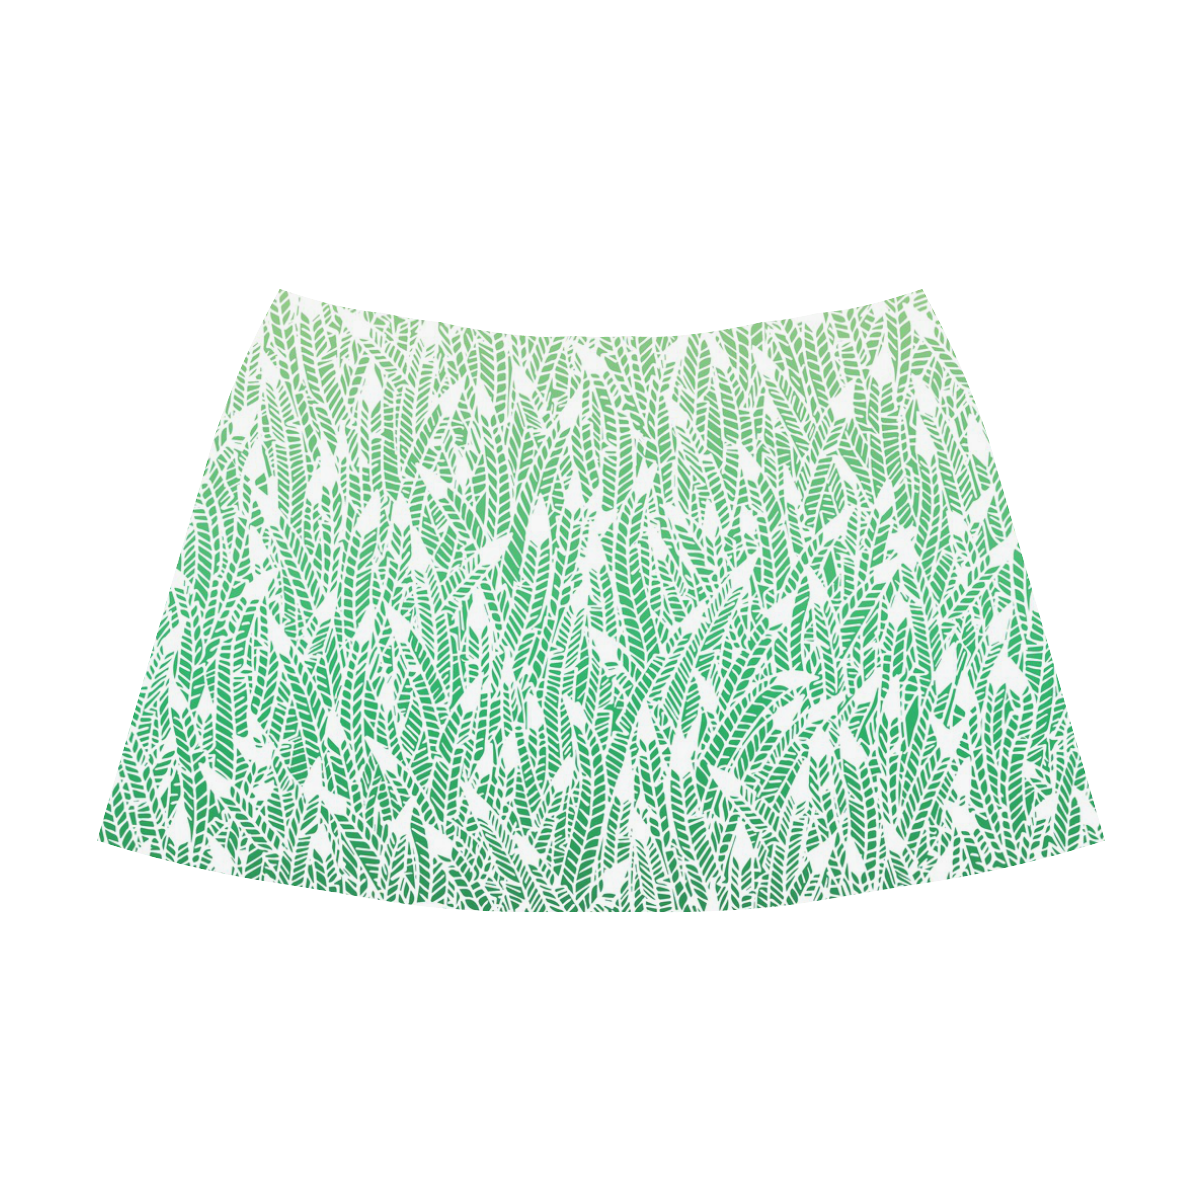 green ombre feathers pattern white Mnemosyne Women's Crepe Skirt (Model D16)